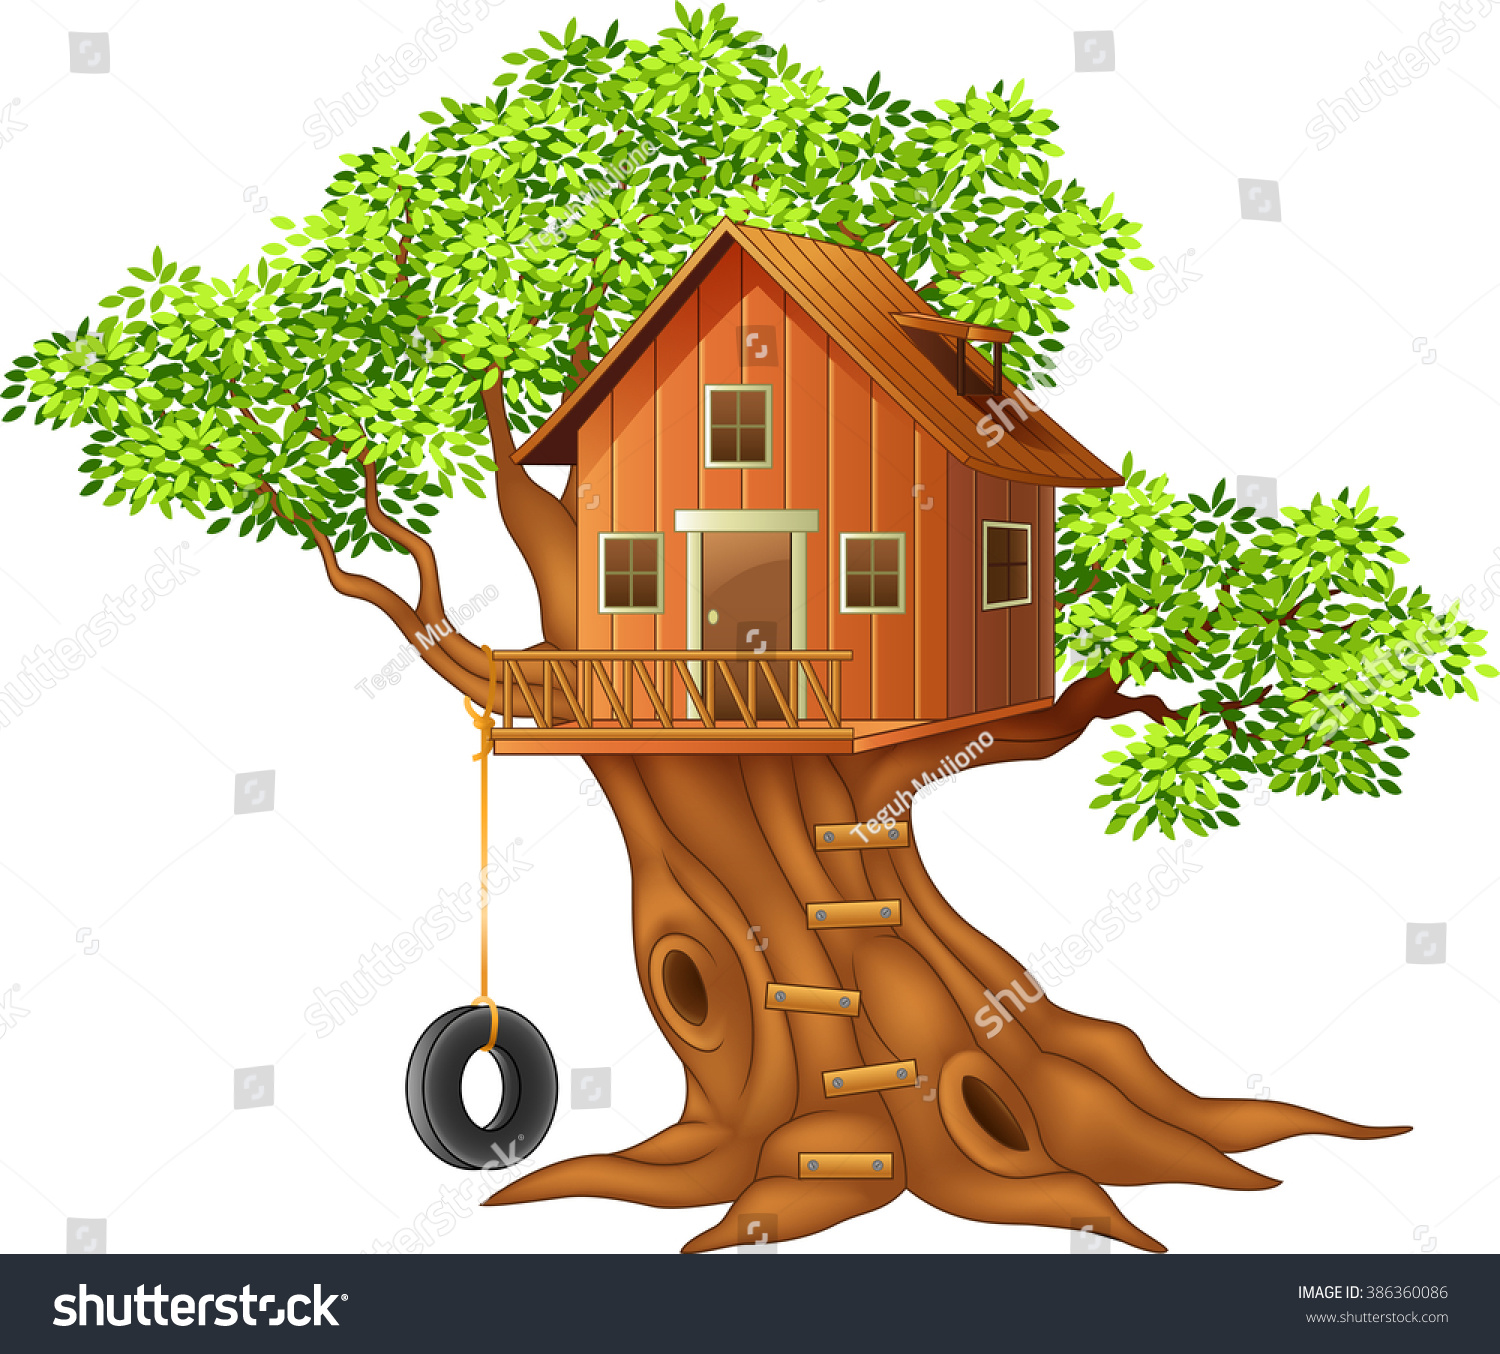 clipart pictures tree house - photo #48